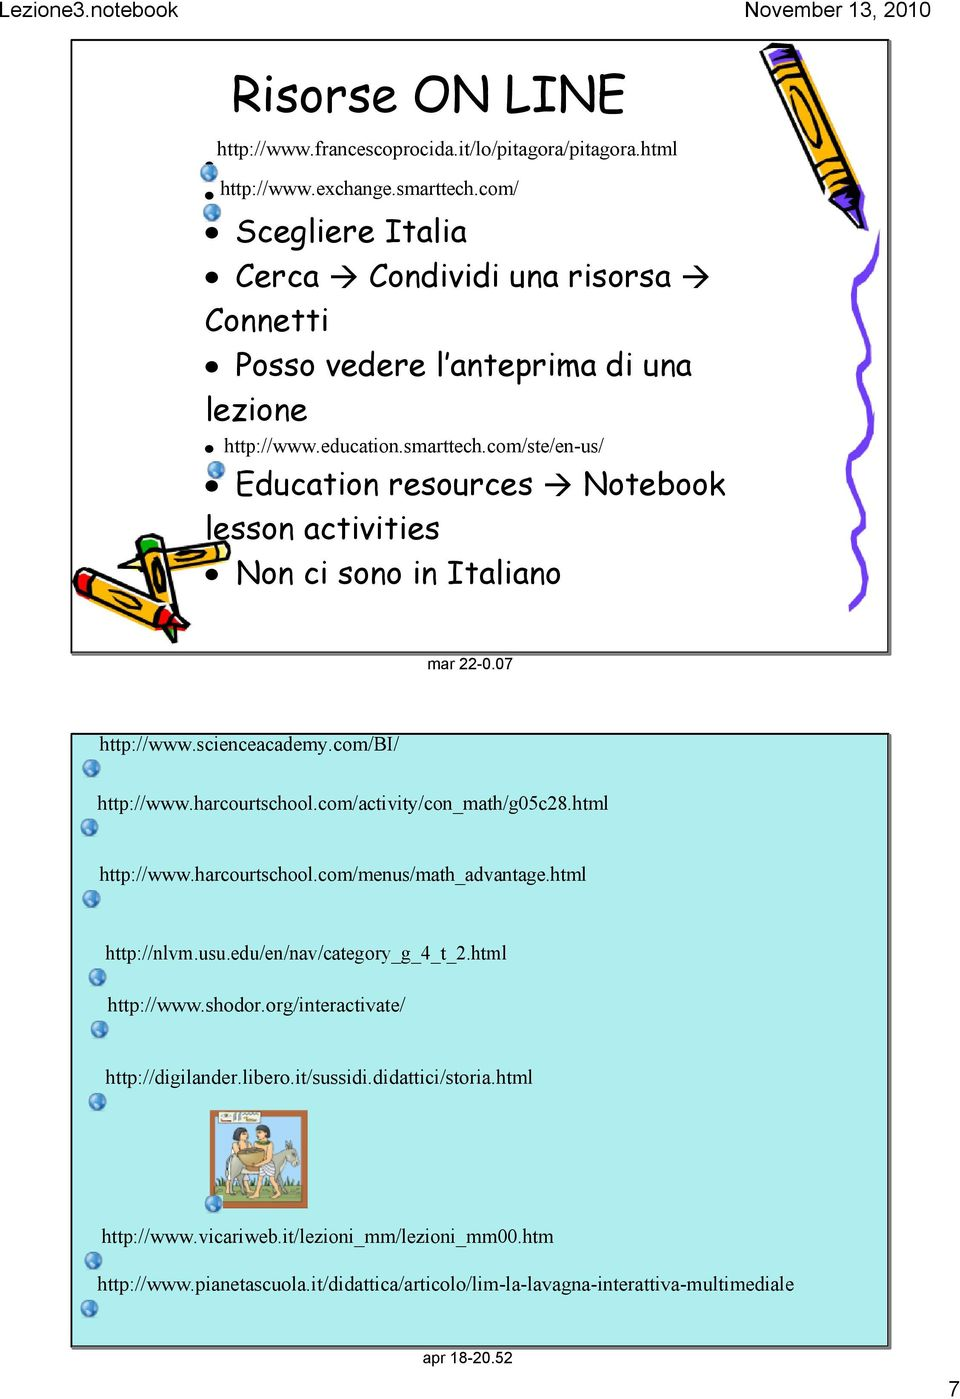 com/ste/en us/ Education resources Notebook lesson activities Non ci sono in Italiano http://www.scienceacademy.com/bi/ http://www.harcourtschool.com/activity/con_math/g05c28.html http://www.